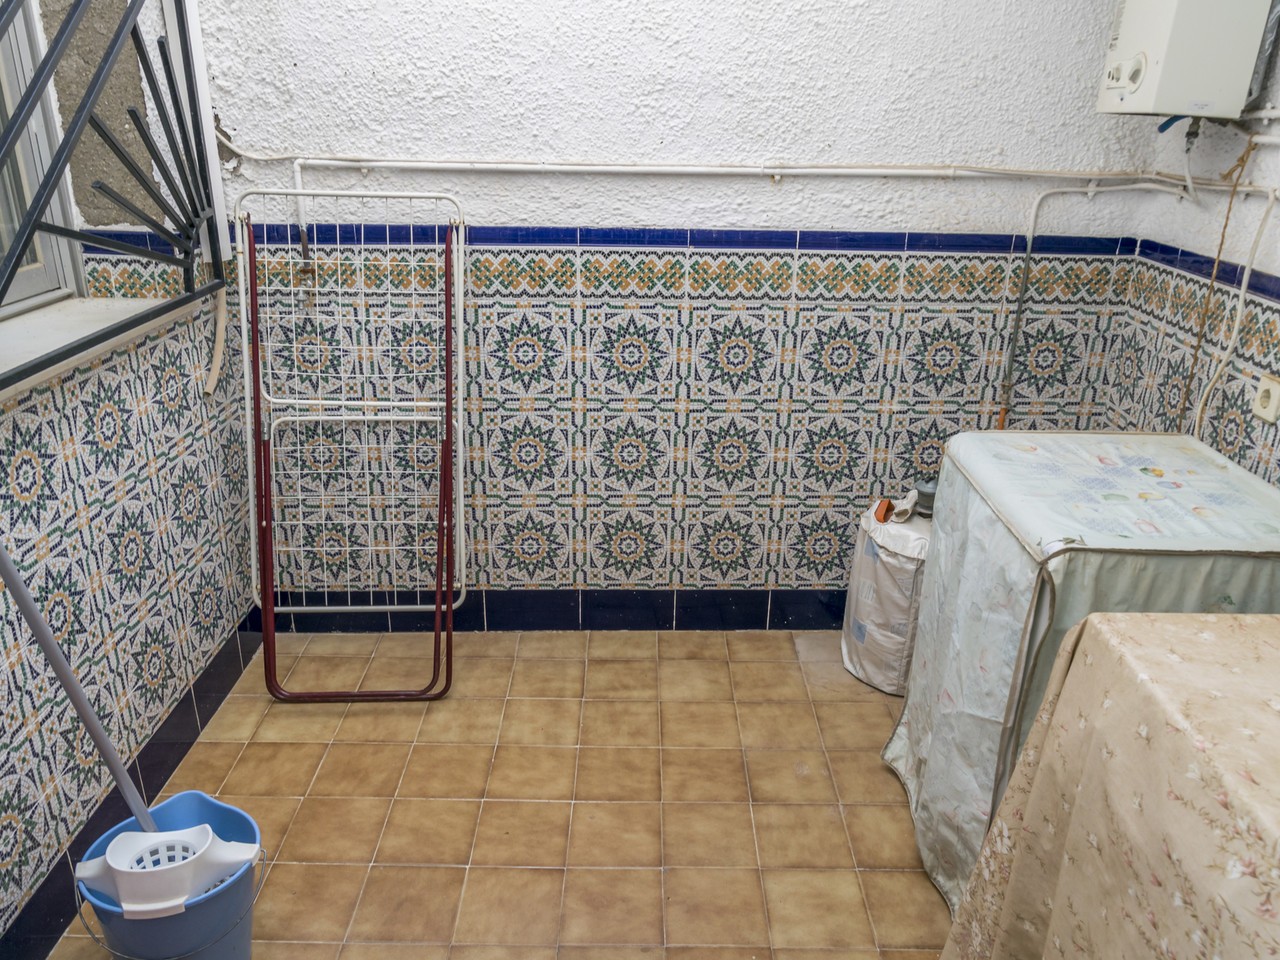 Propery For Sale in Turre, Spain image 14